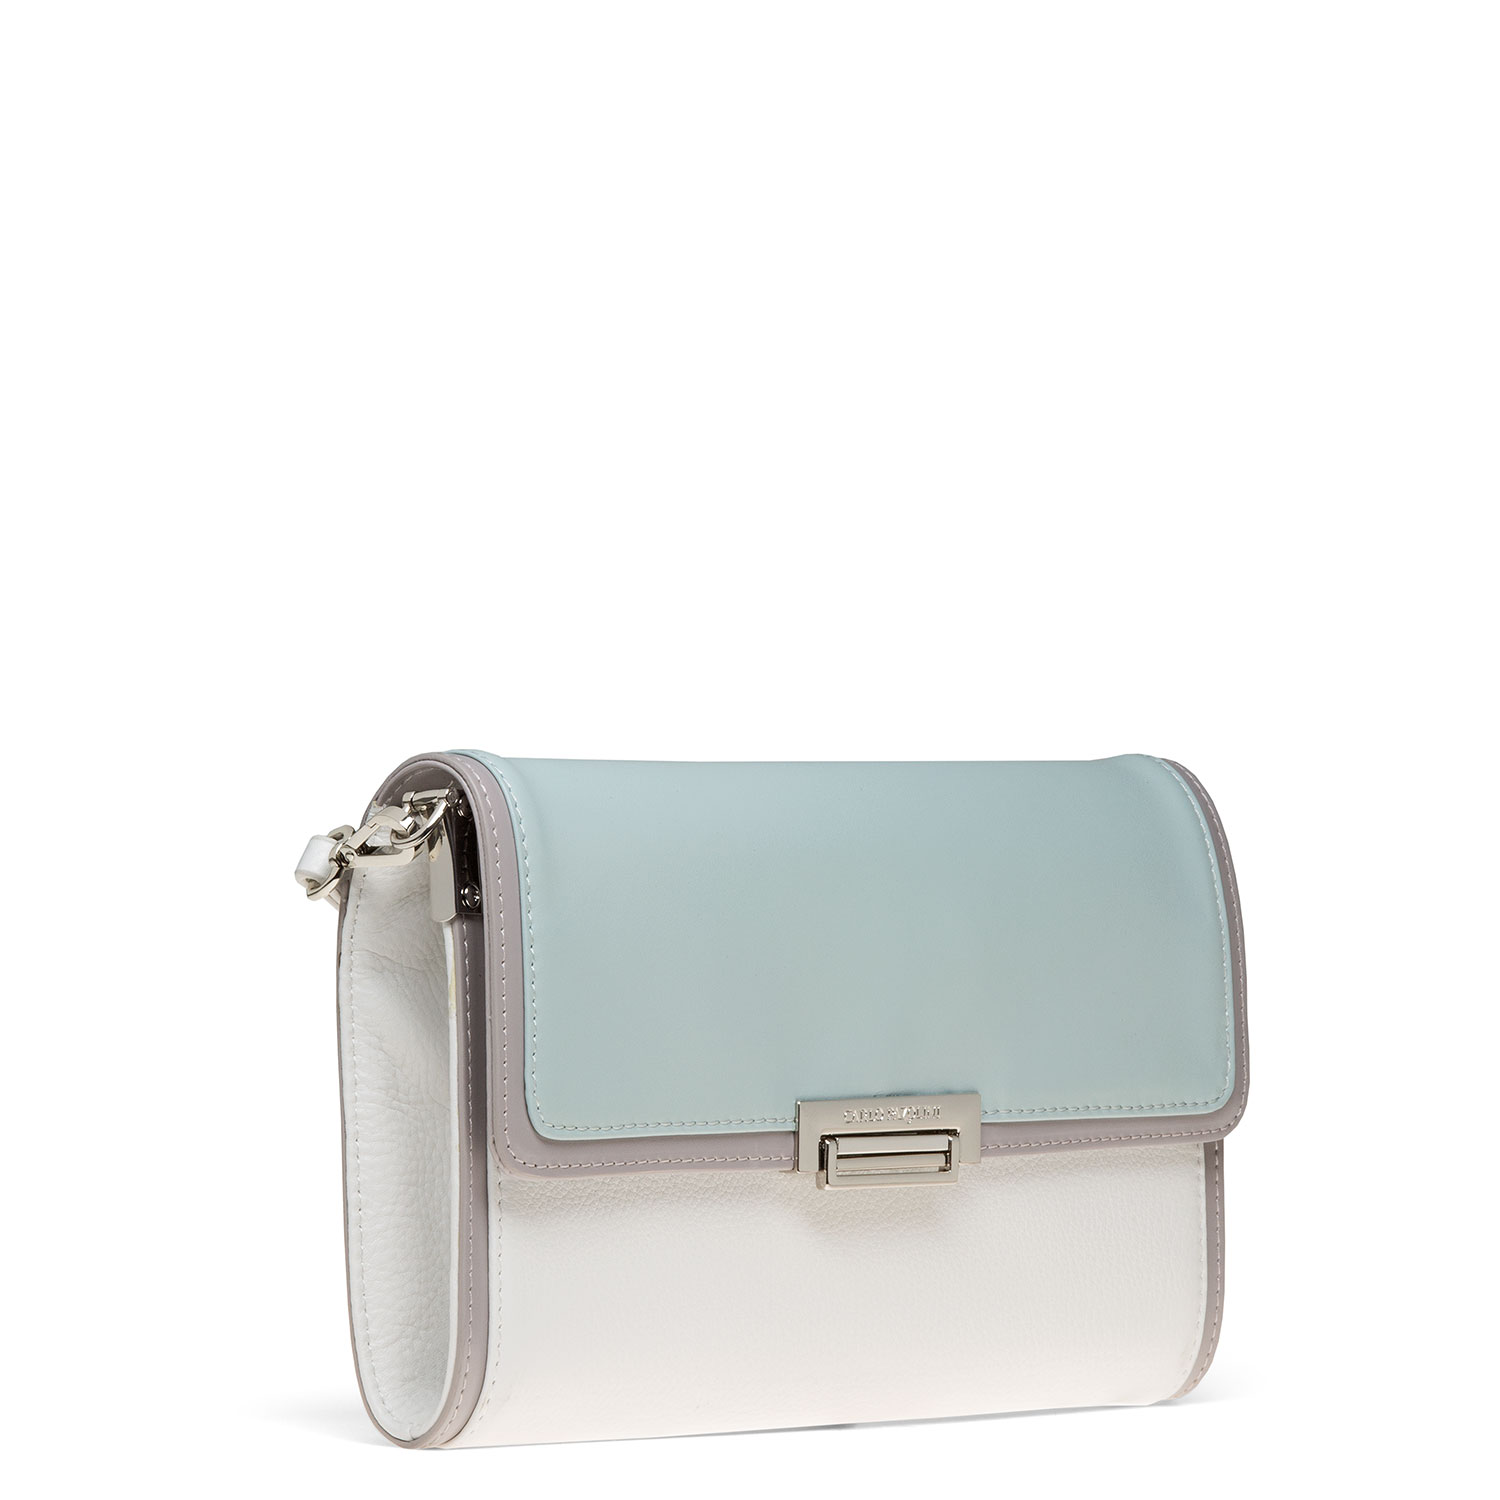 Women's bag CARLO PAZOLINI PS-N1166-23